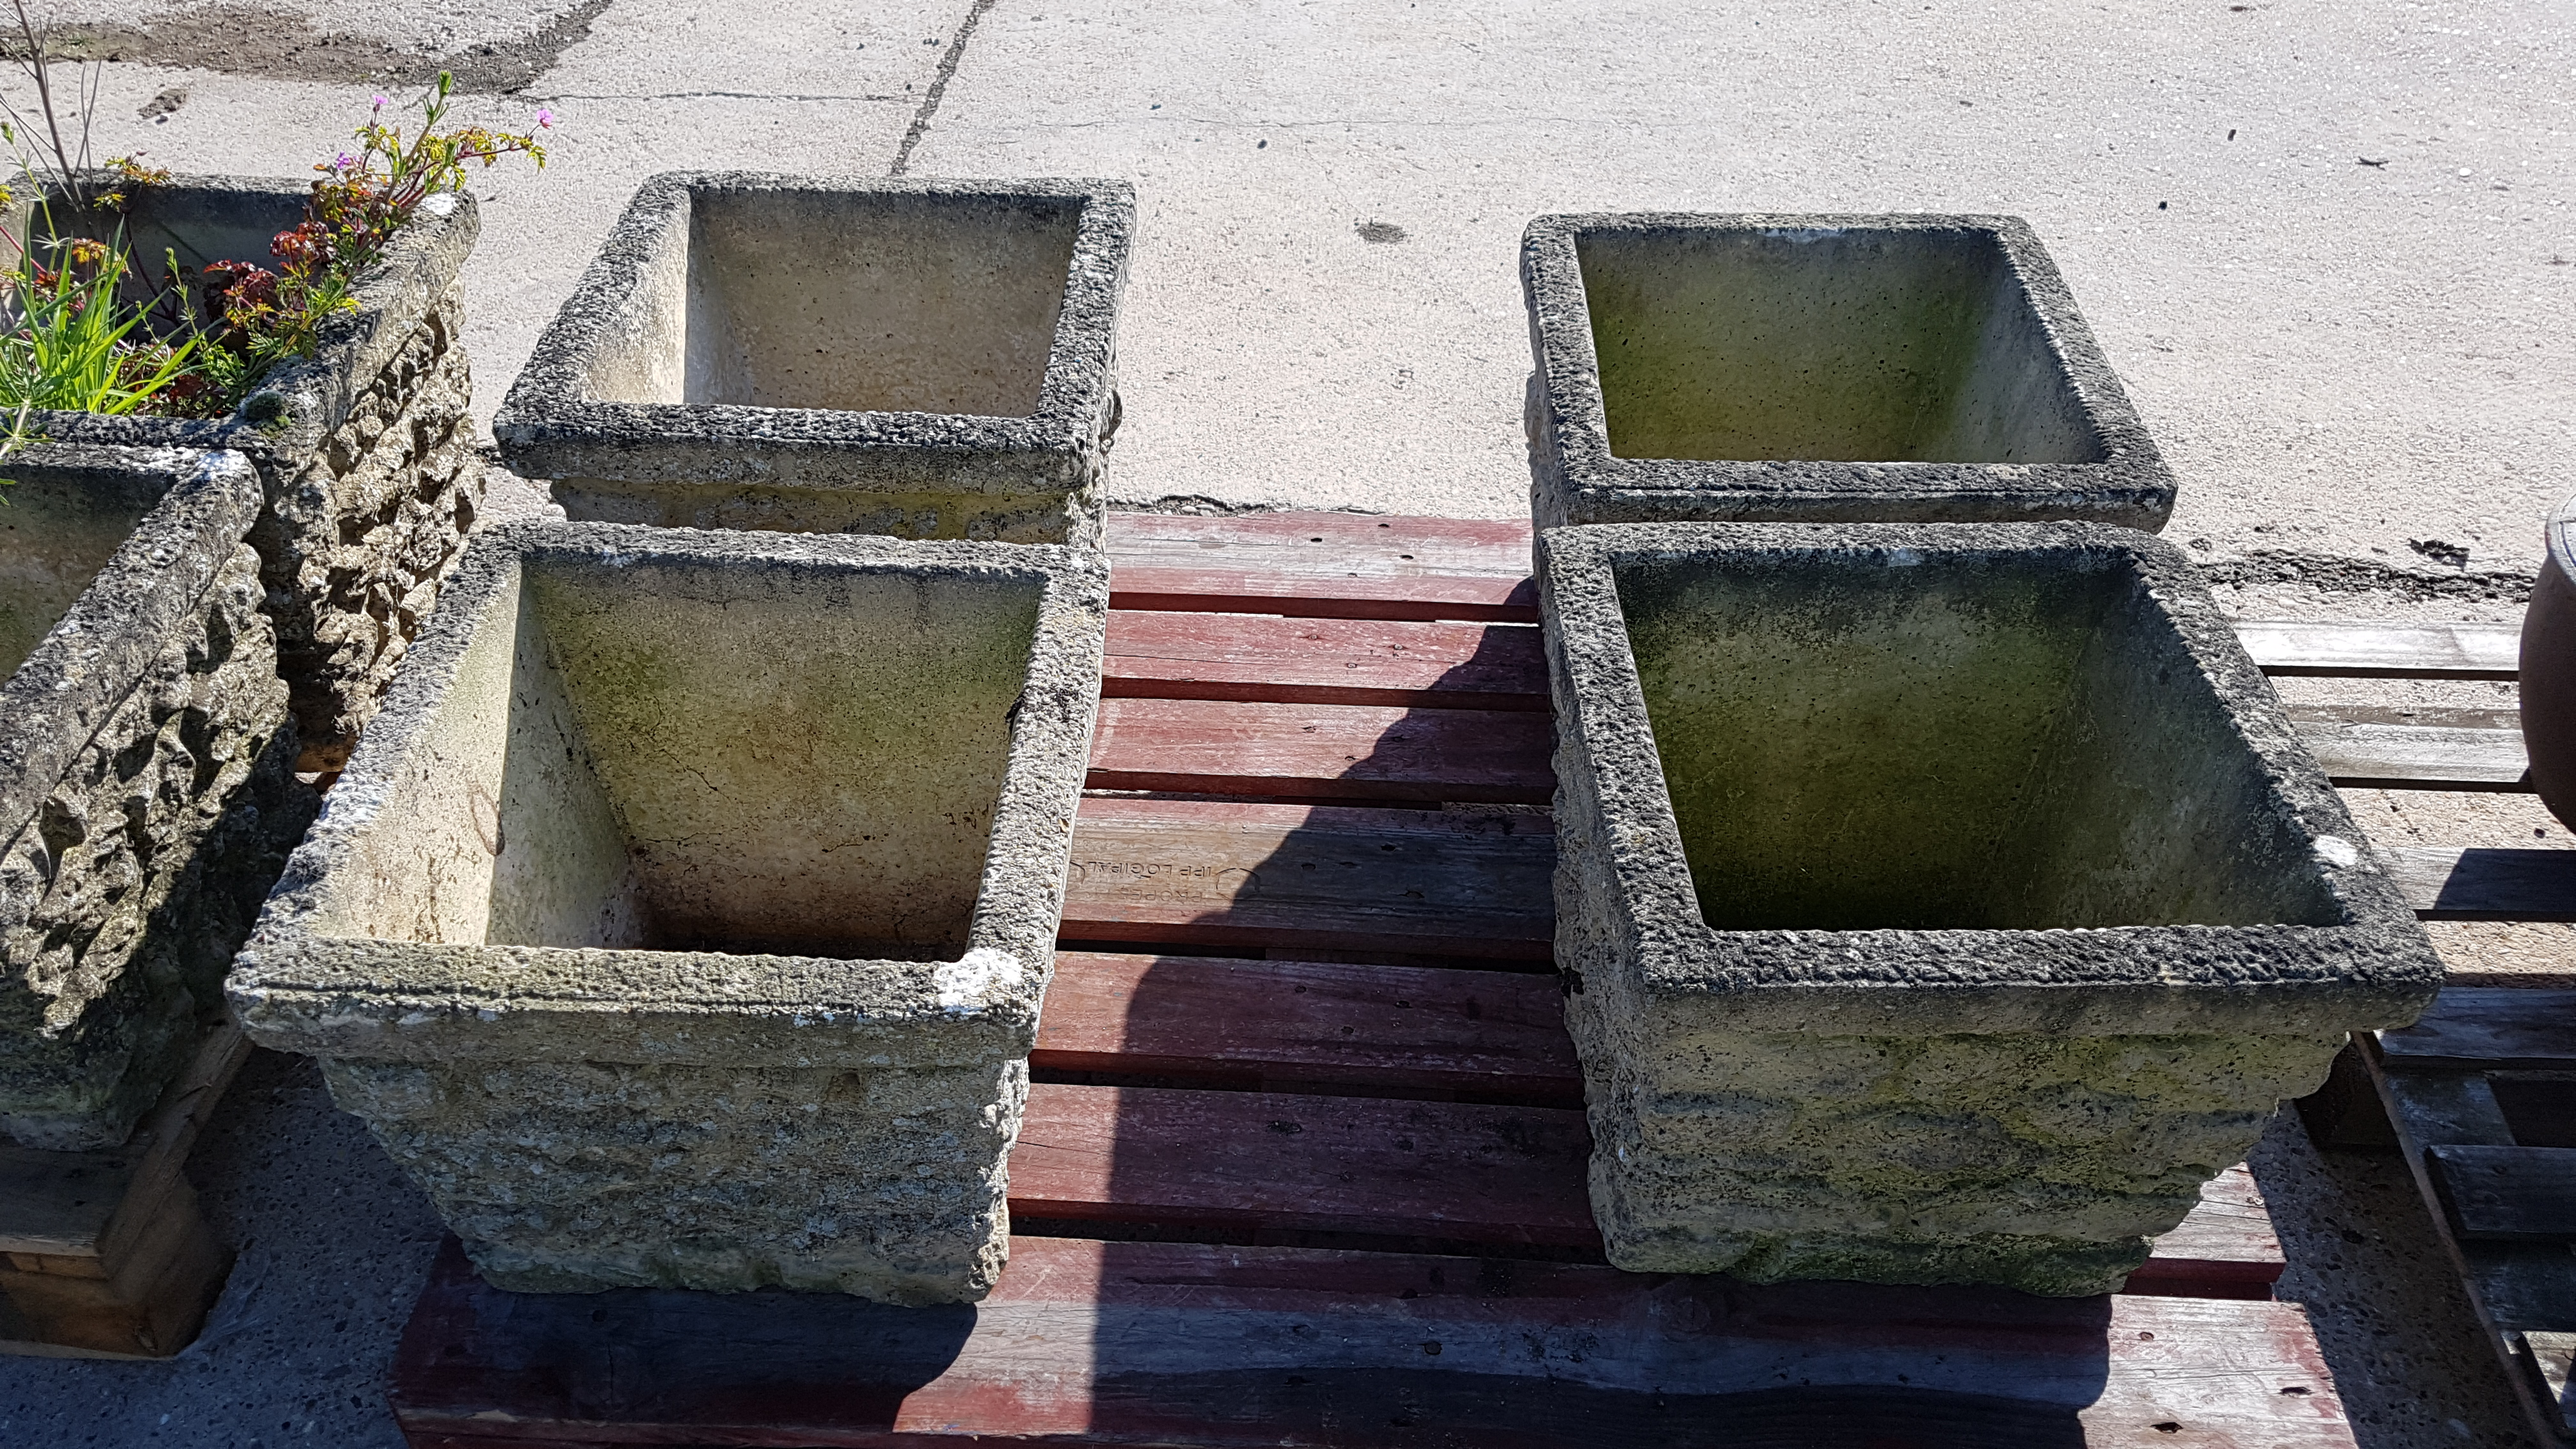 Lot 50 - 4 x Square Concrete Planters